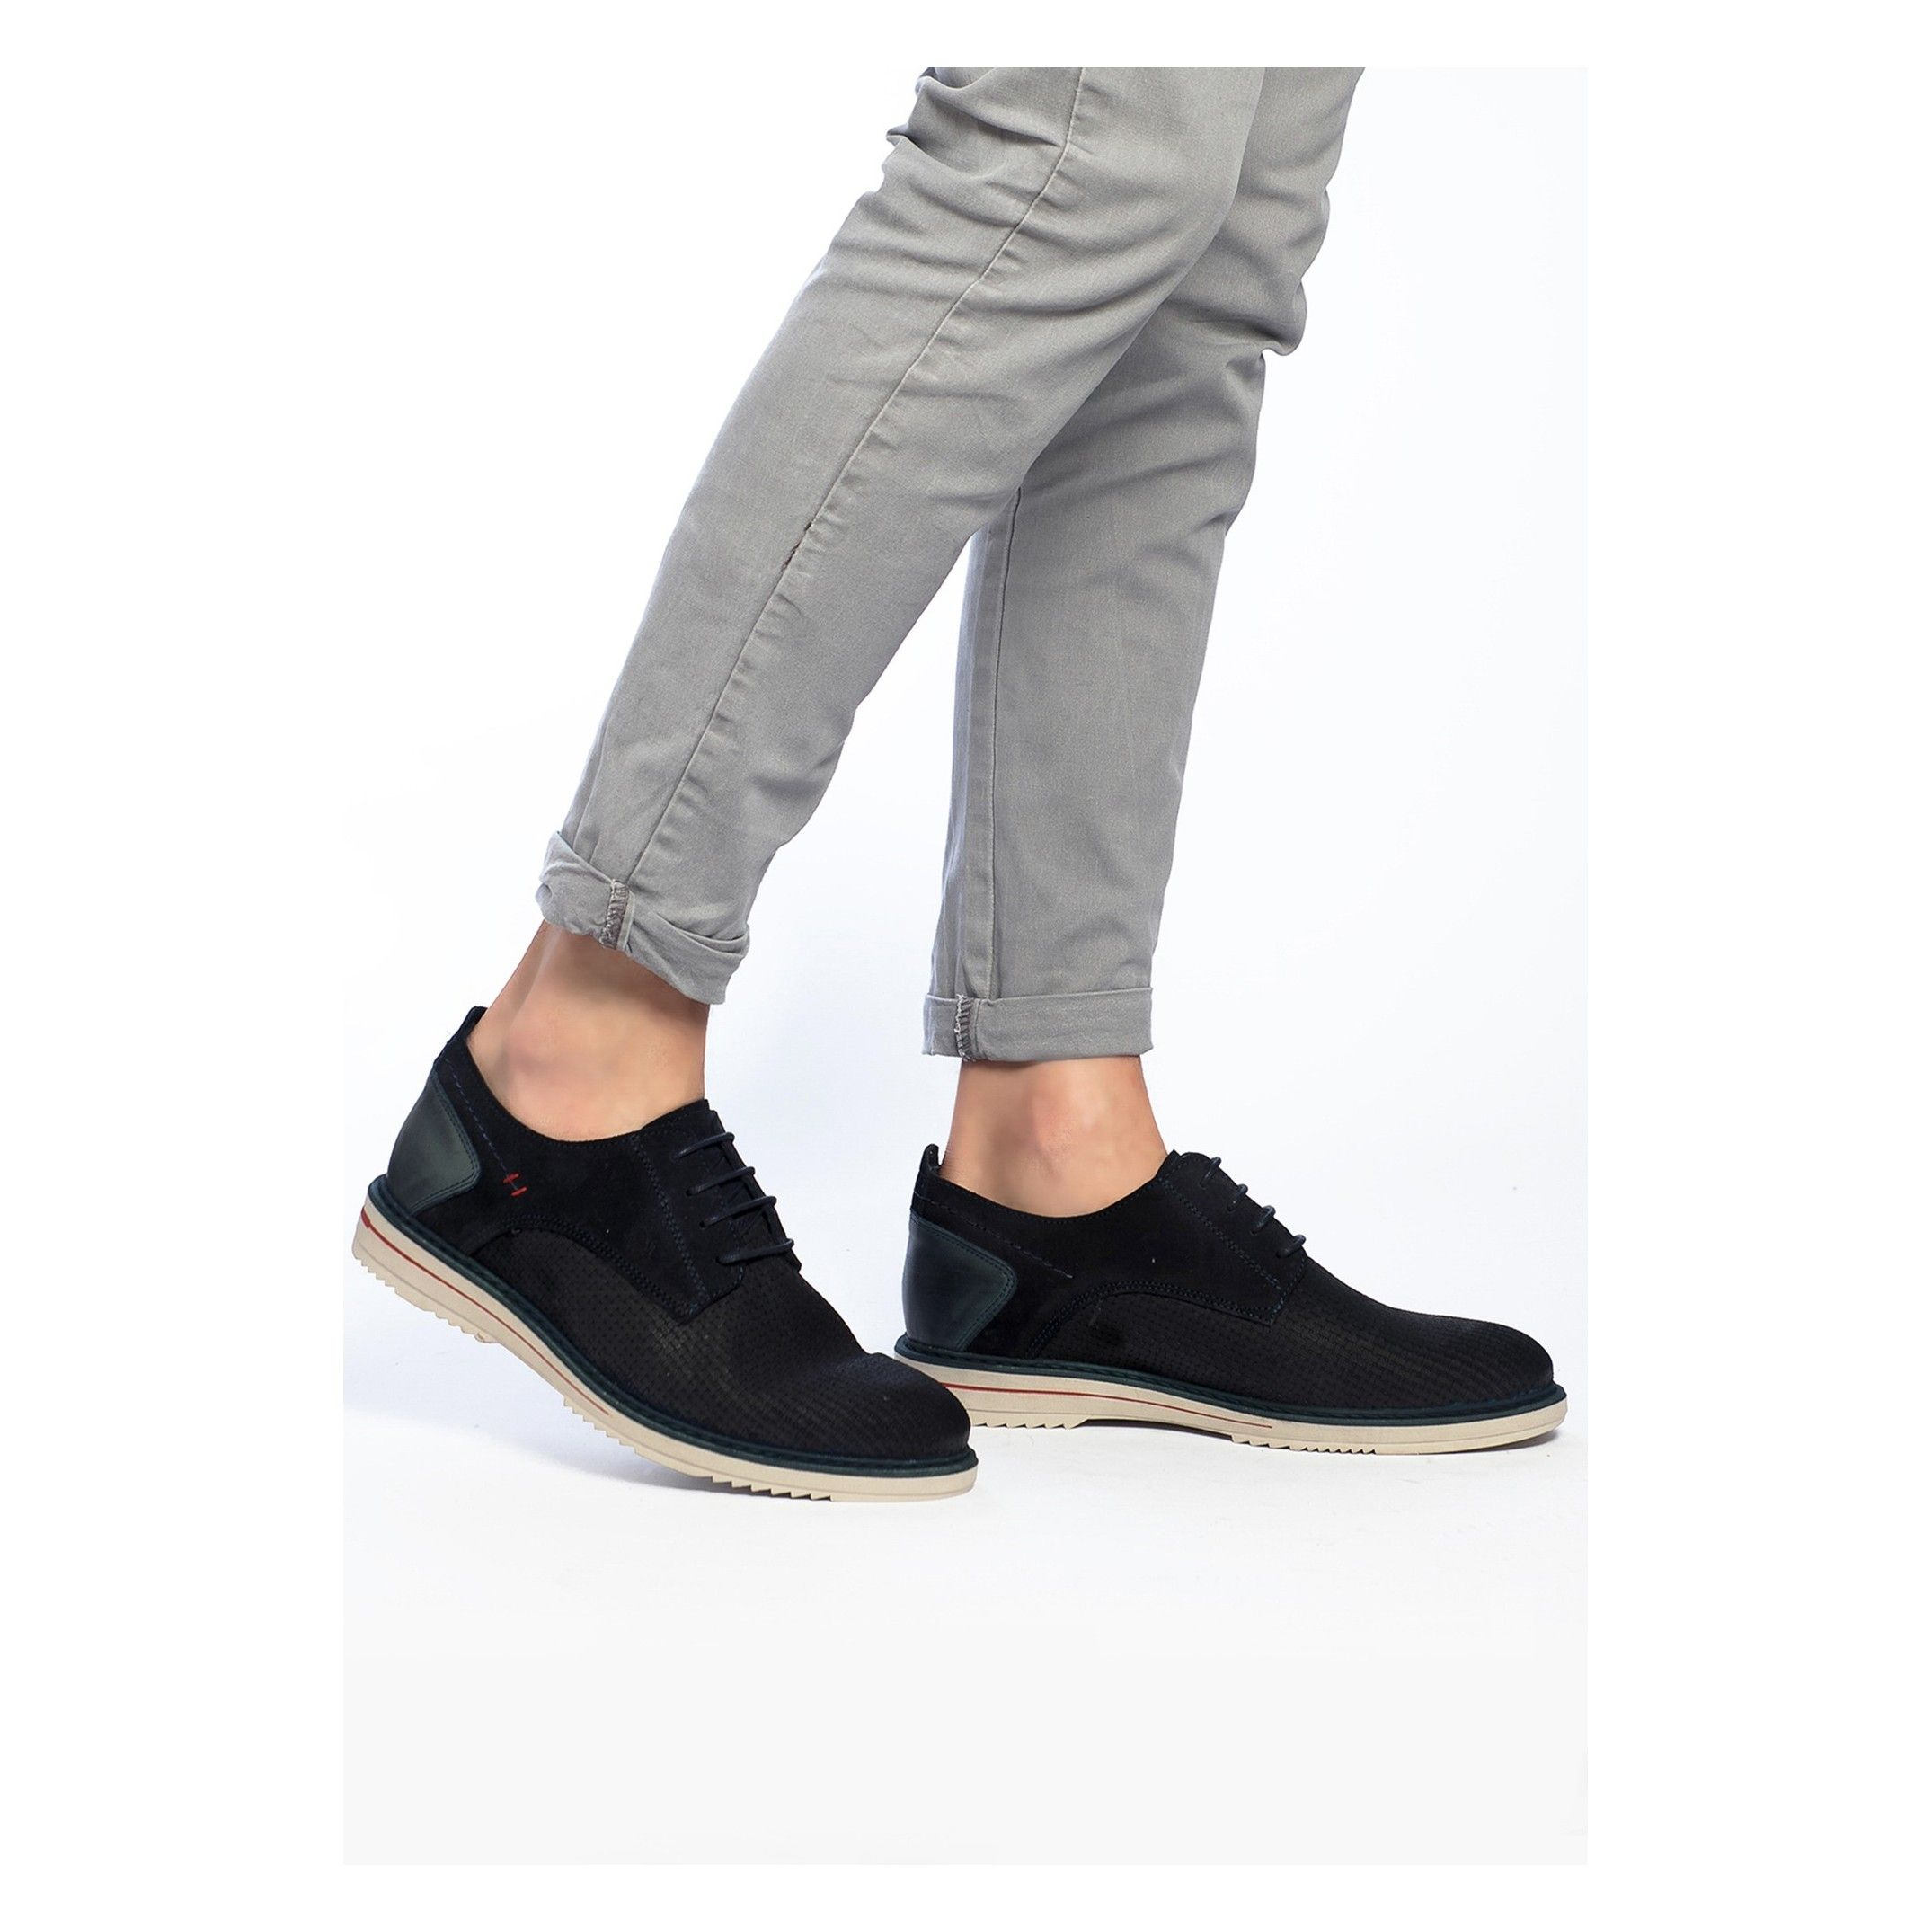 Leather Lace Up Shoes for Men